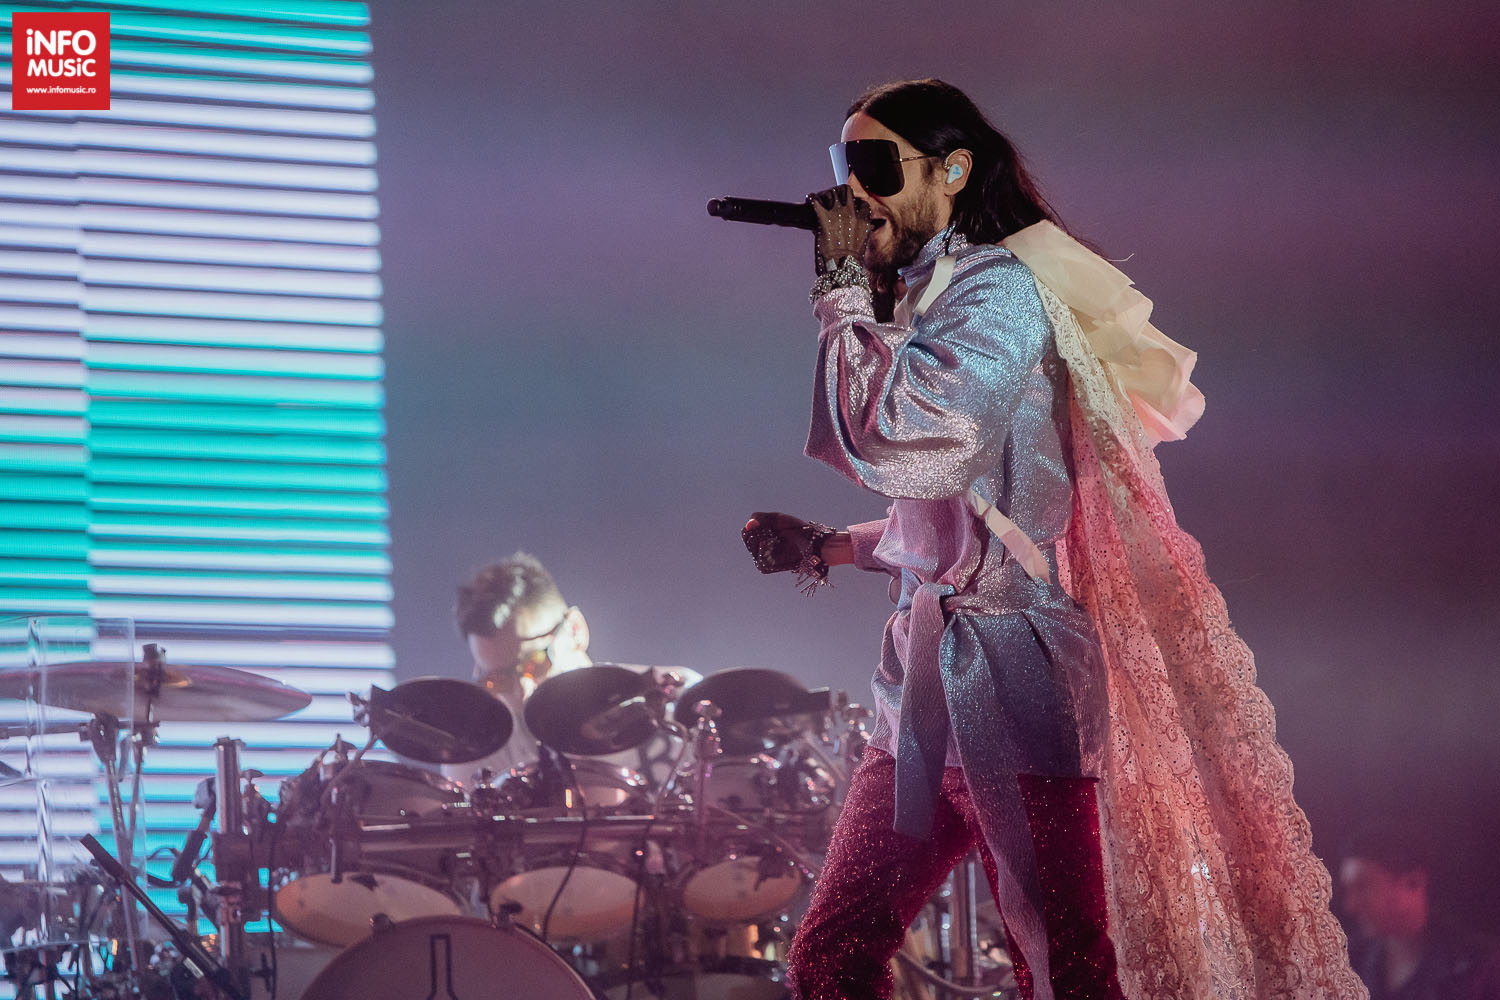 Jared Leto / Thirty Seconds to Mars